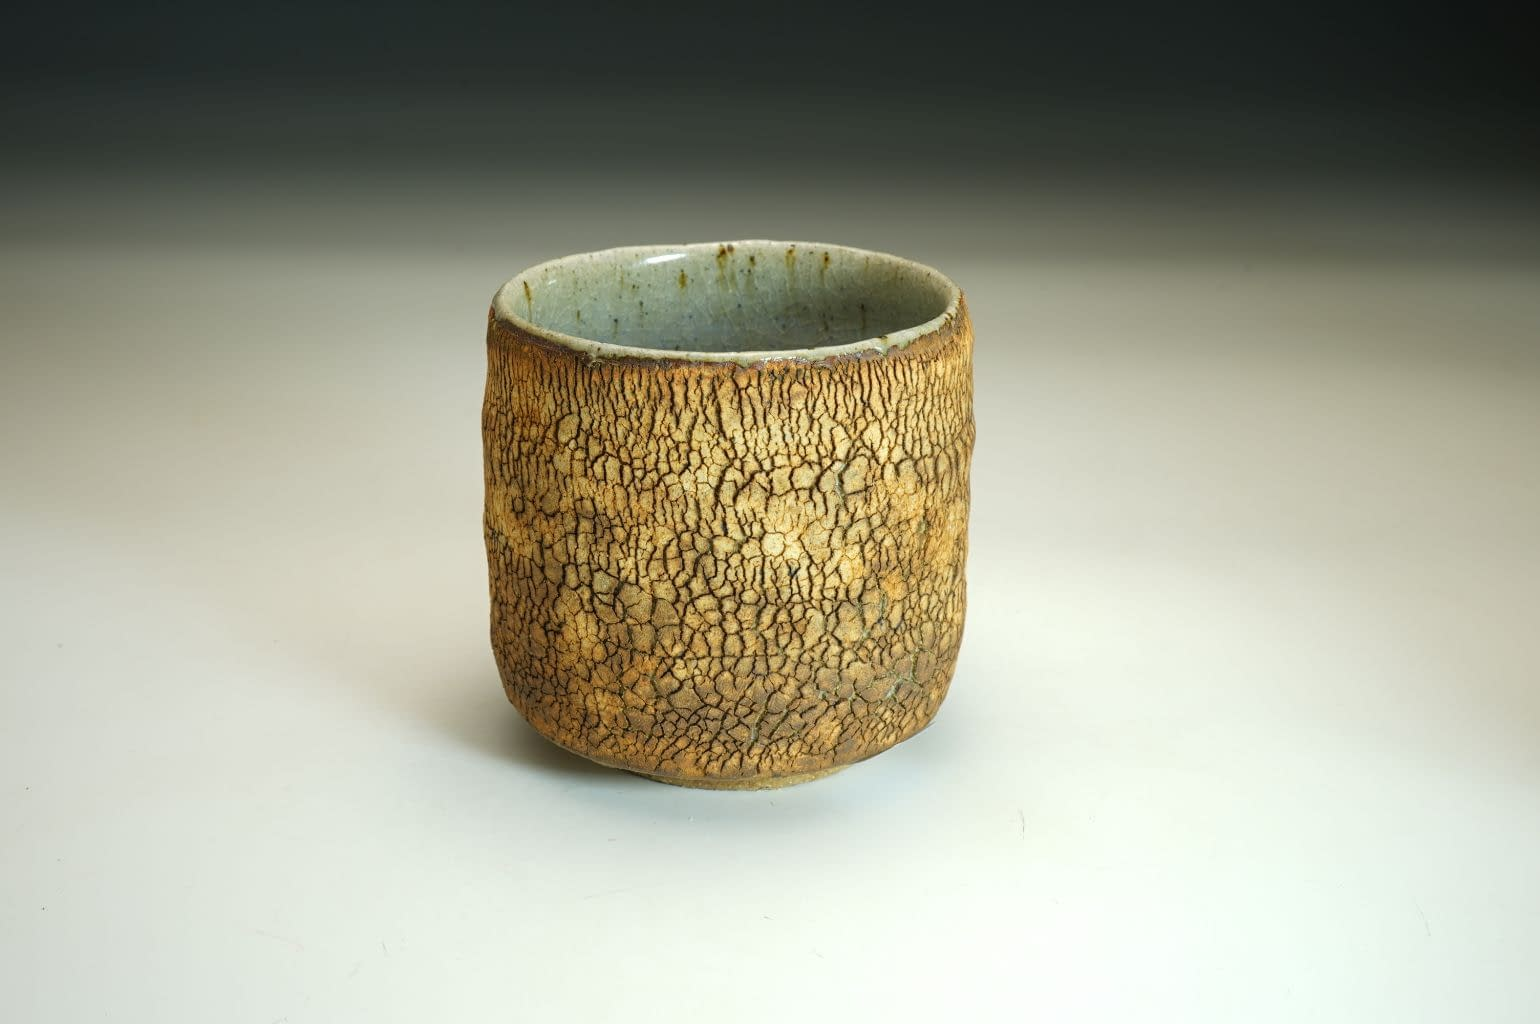 No. 4. Stoneware chawan tea bowl with earth textured surface